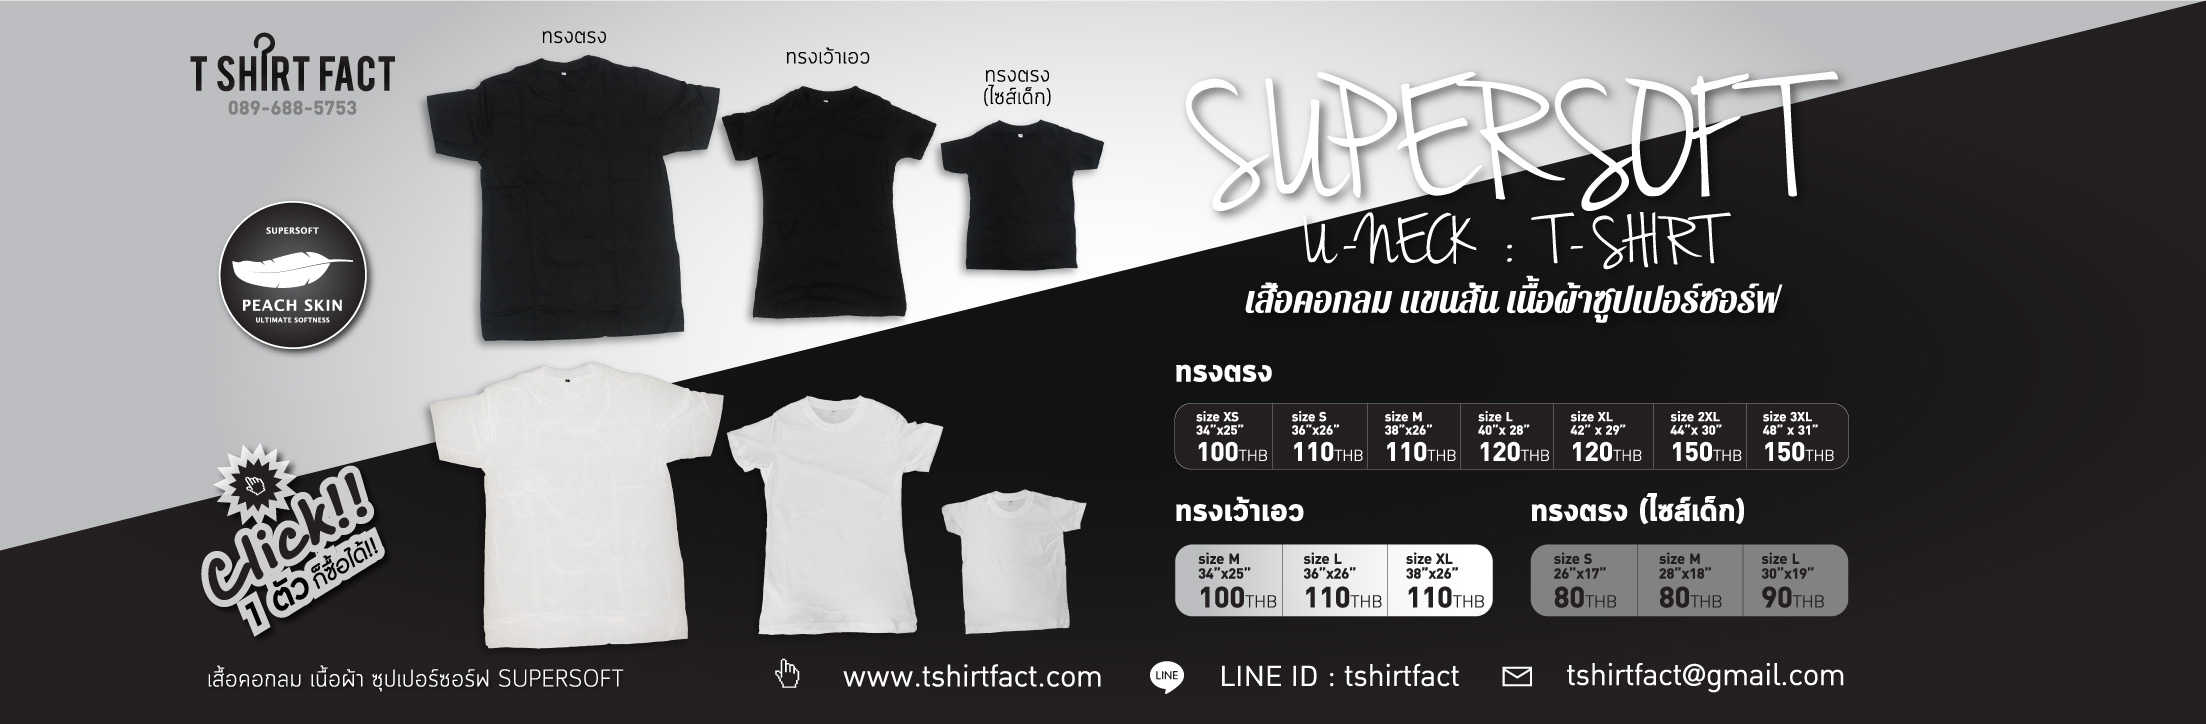 TSF-banner_SUPERSOFT_for-web_new